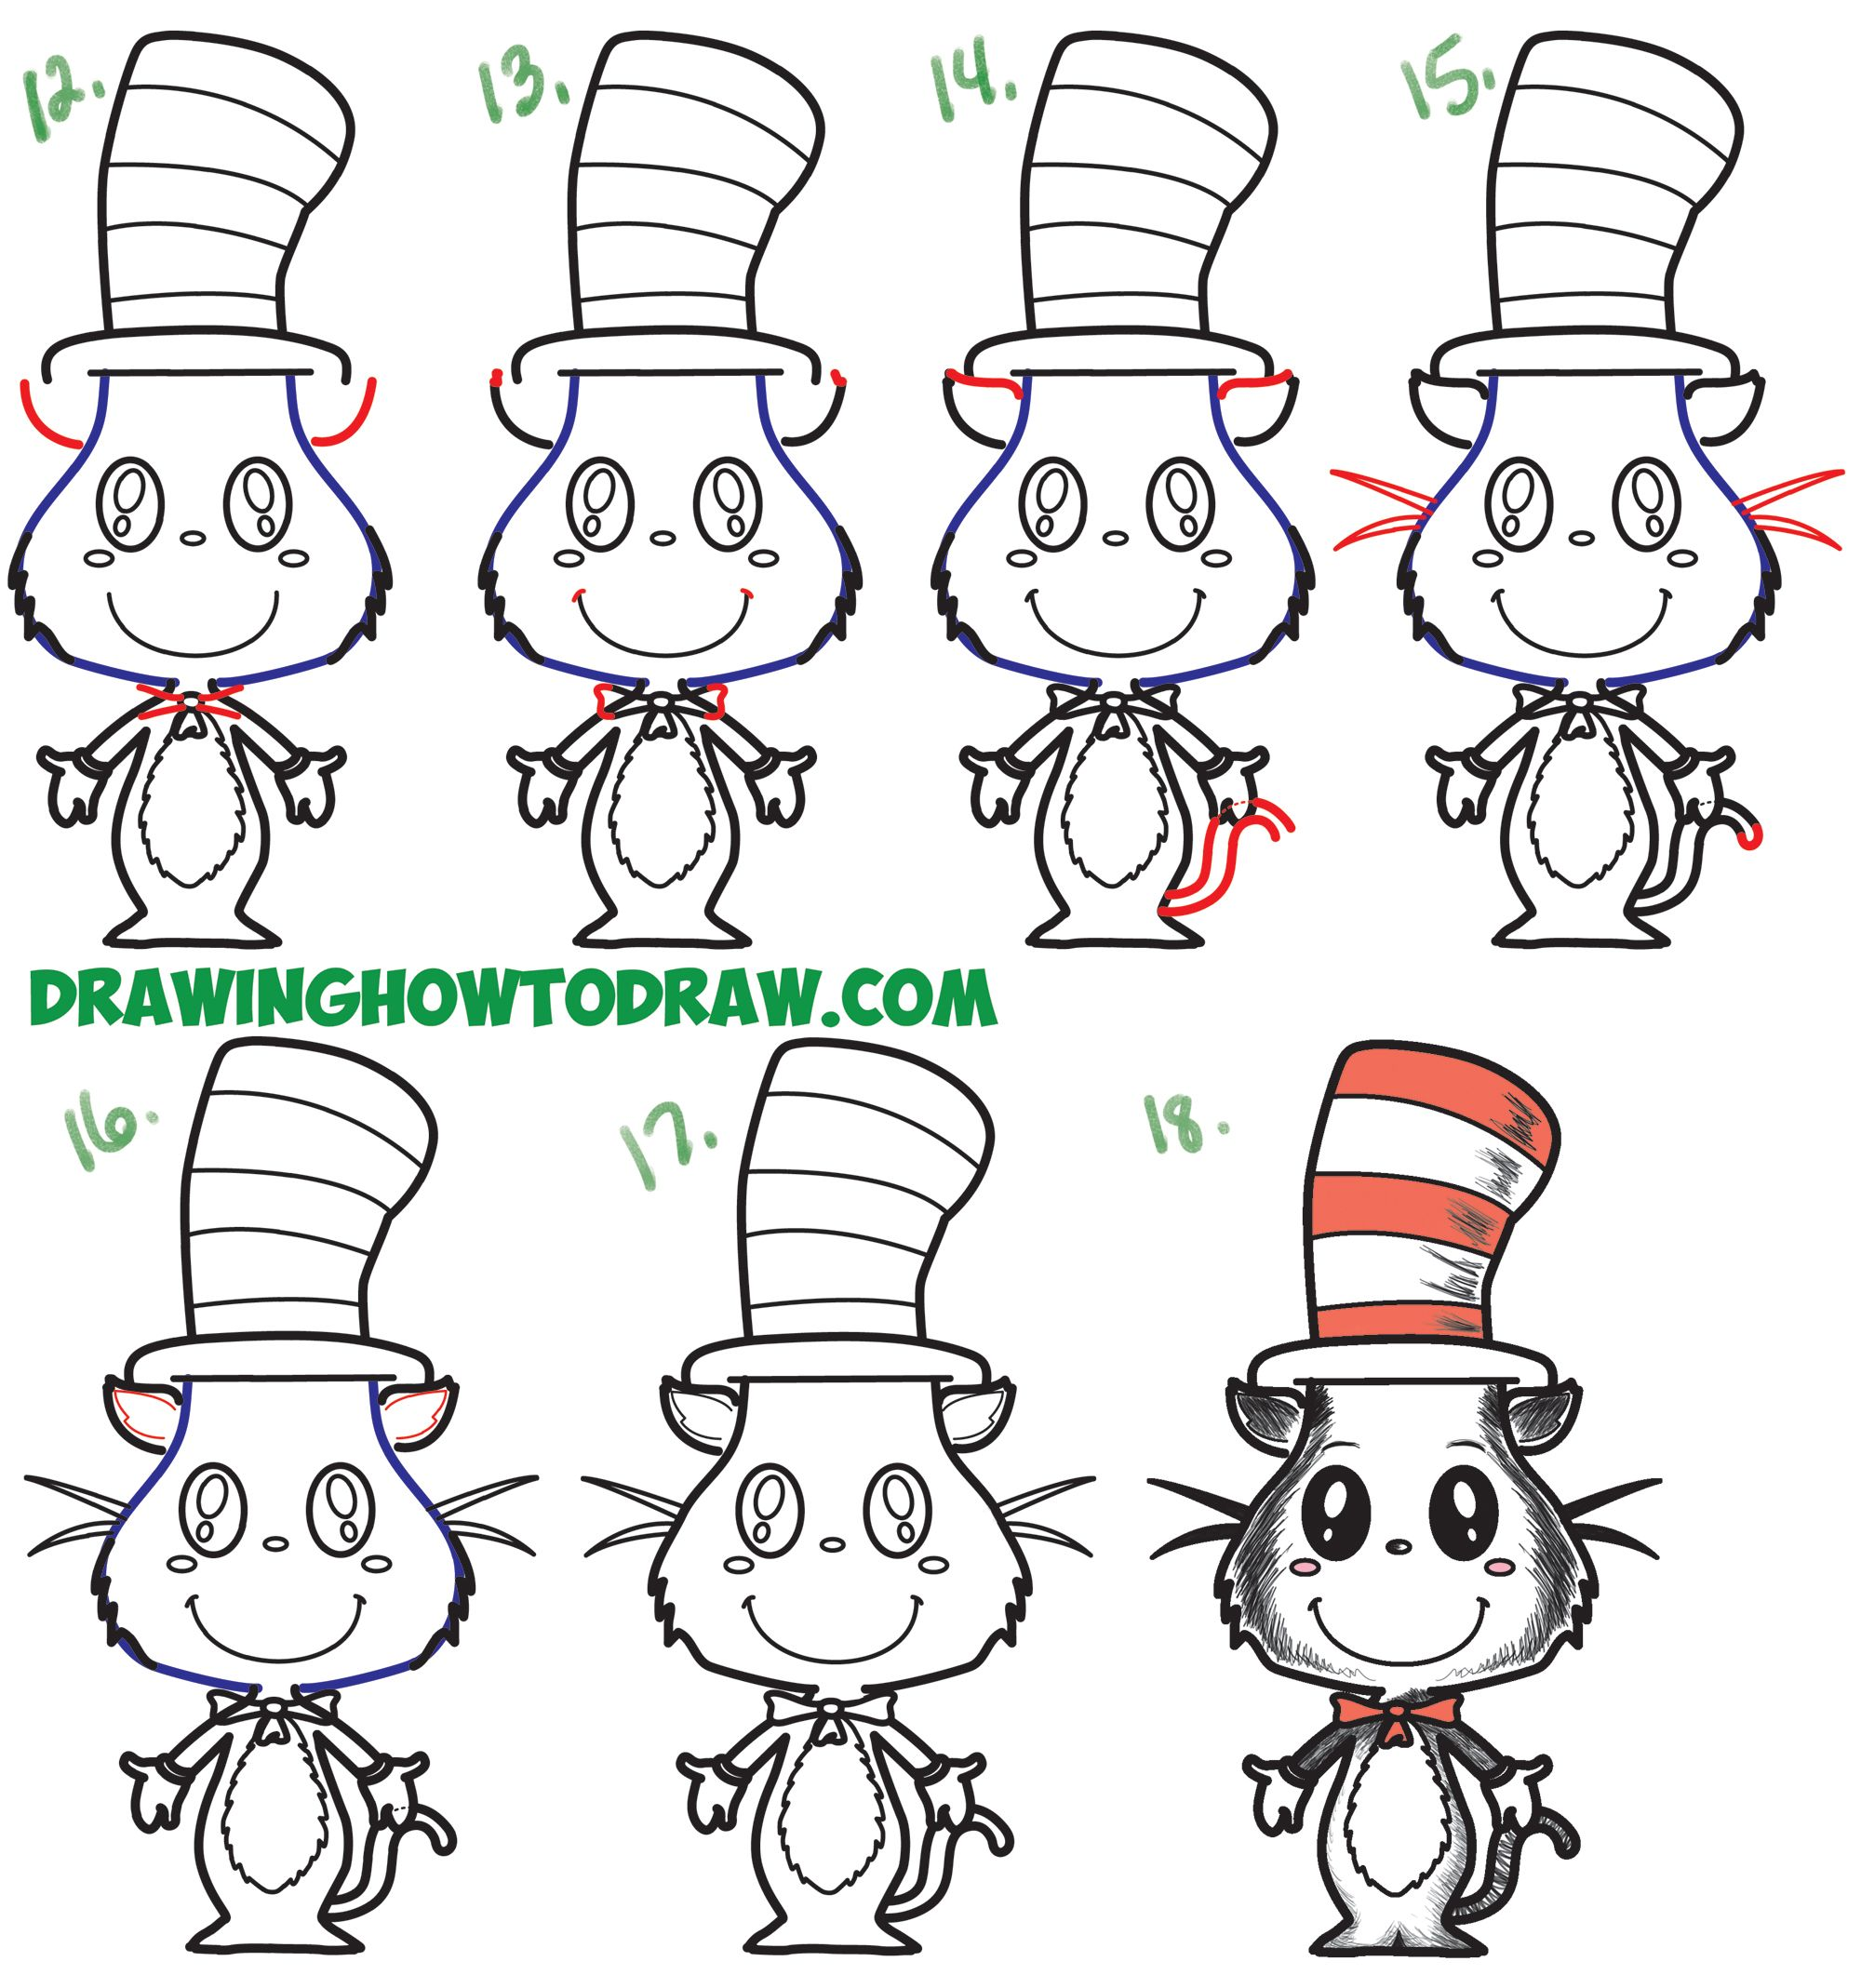 How To Draw The Cat In The Hat Cute Kawaii Chibi Version Easy